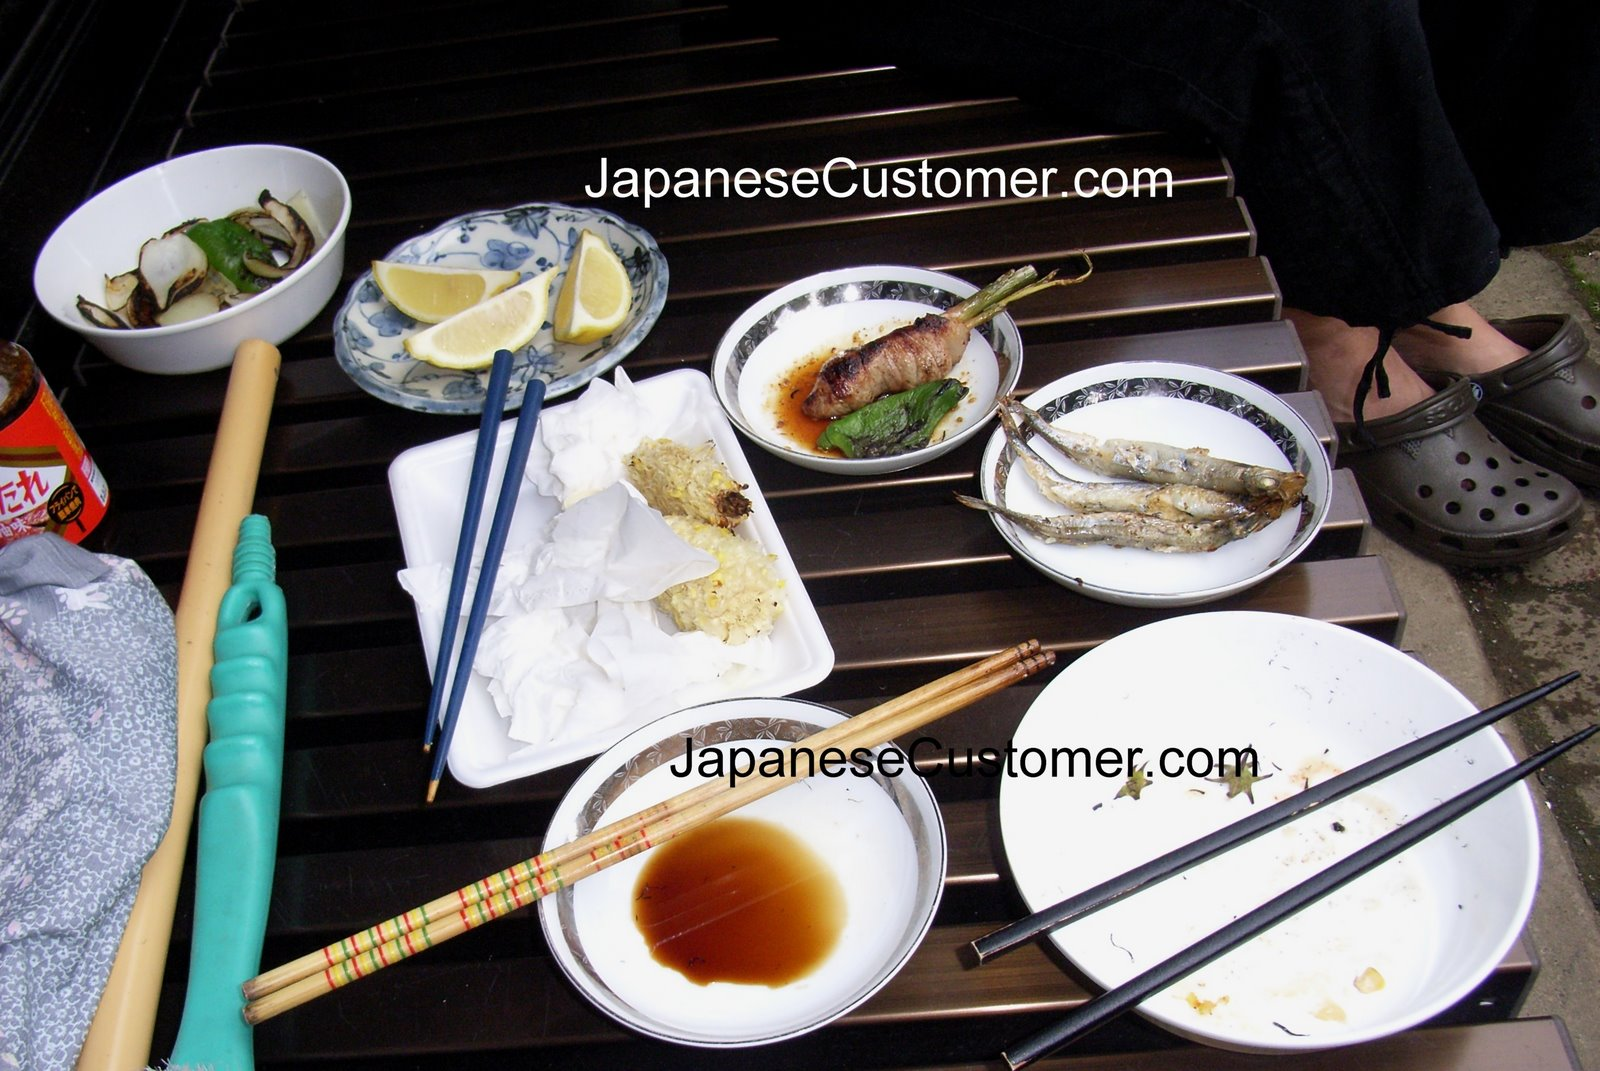 Summer bbq in Japan copyright peter hanami 2005